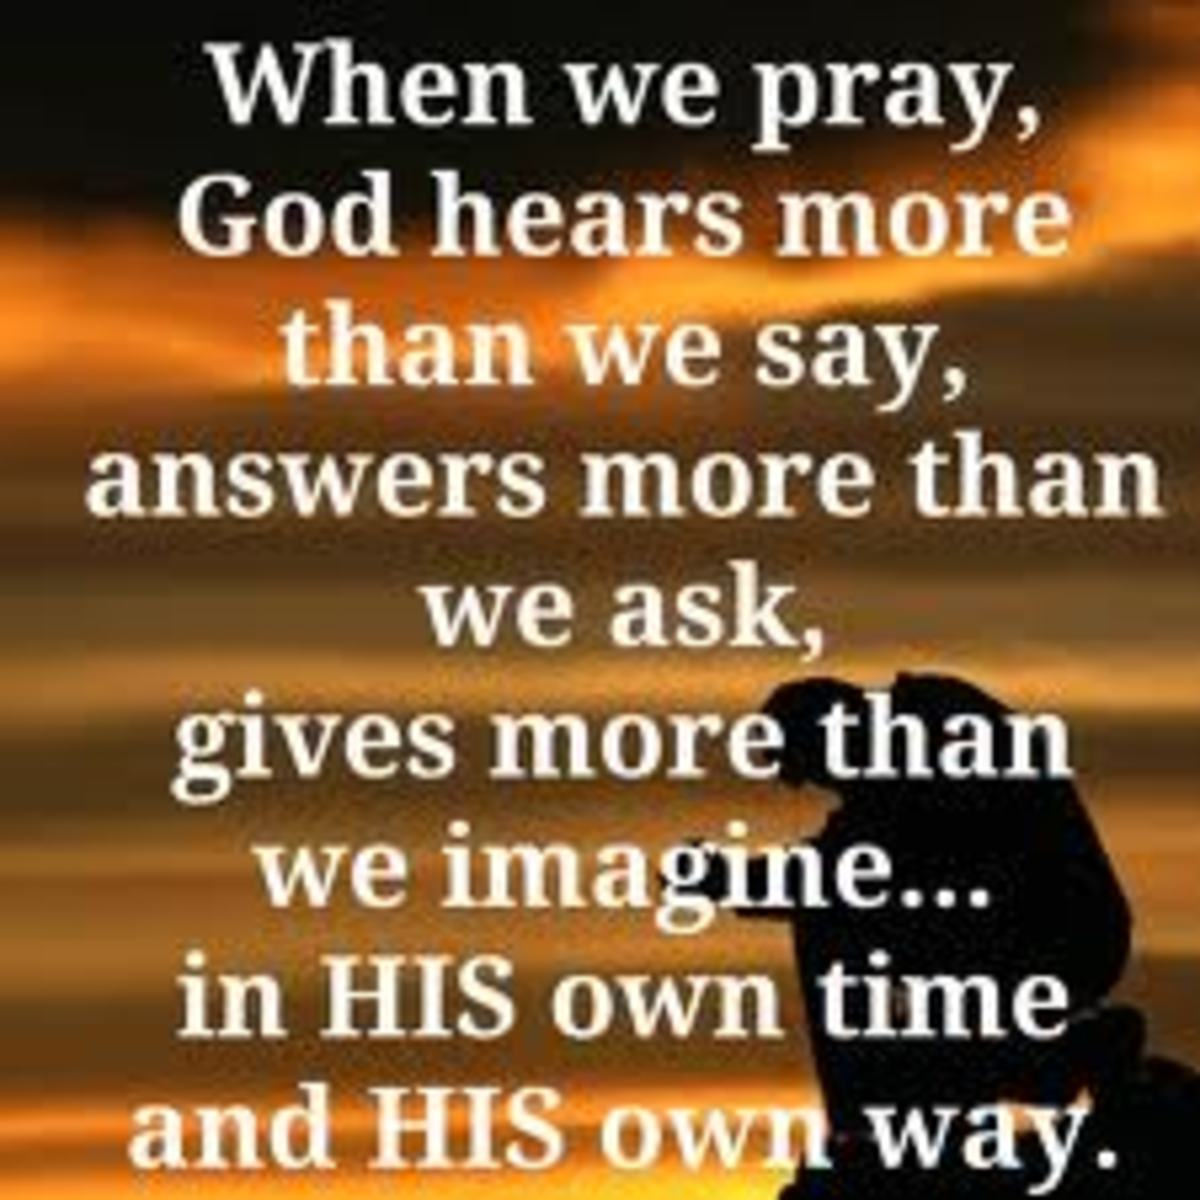 We need to believe in God and pray to God, it would be the right thing to do, because we will feel then that we are doing something worthwhile, in the hope that God will answer our prayers in his own time and his own ways. Amen.